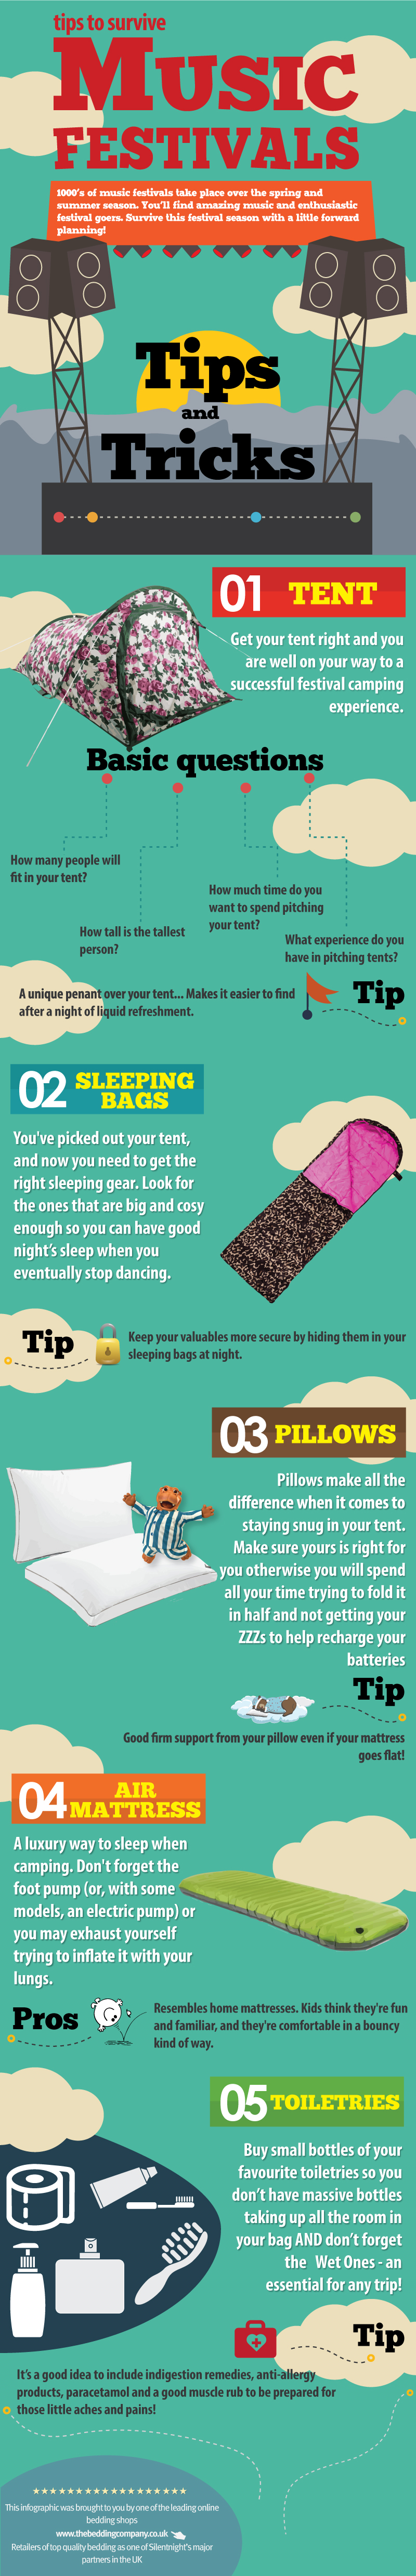 Tips To Survive Music Festivals